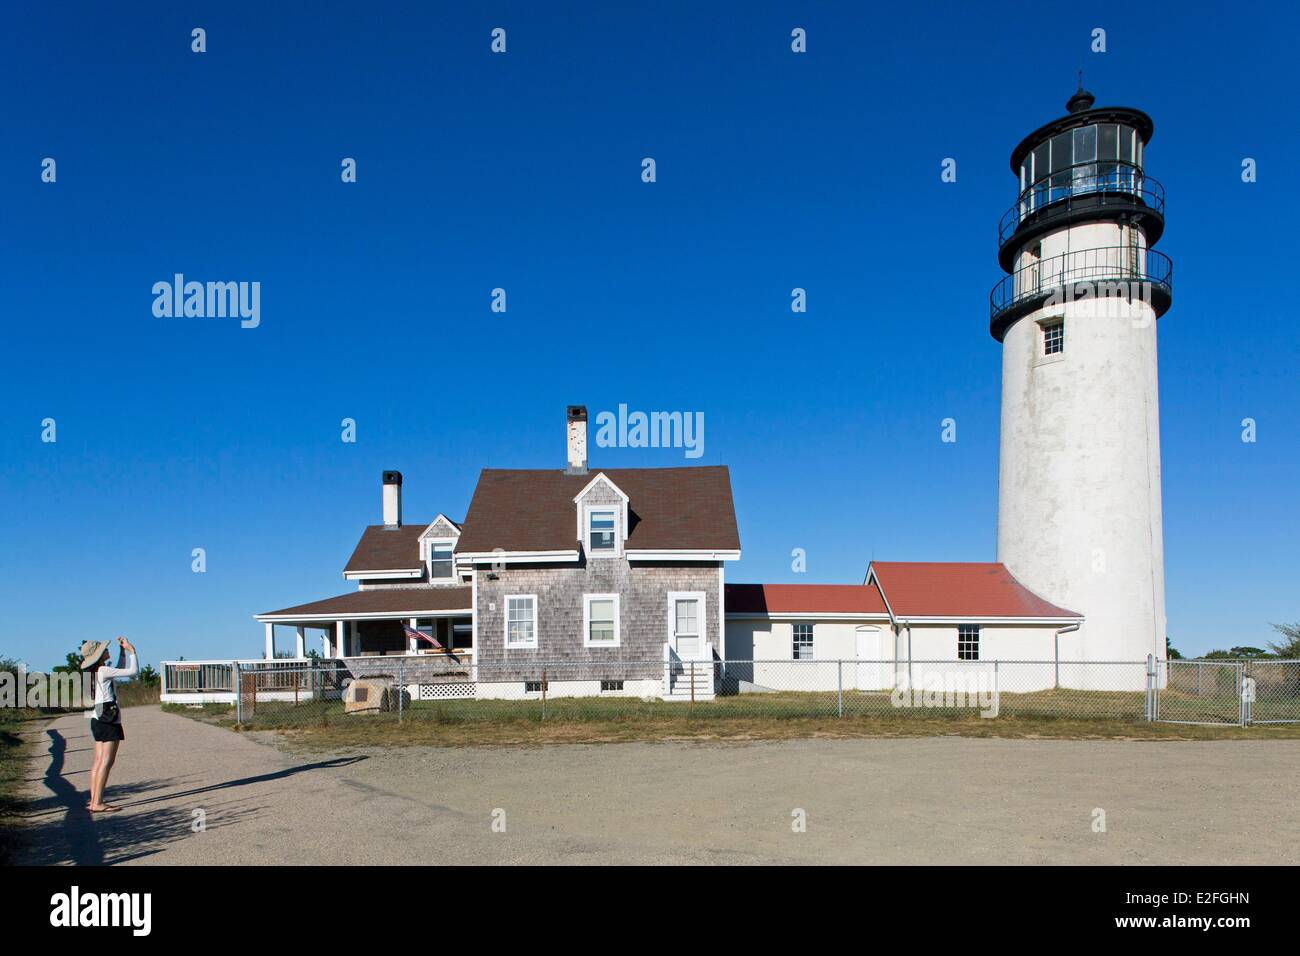 Estados Unidos, Massachusetts, en Cape Cod, Truro, Highland Faro Imagen De Stock